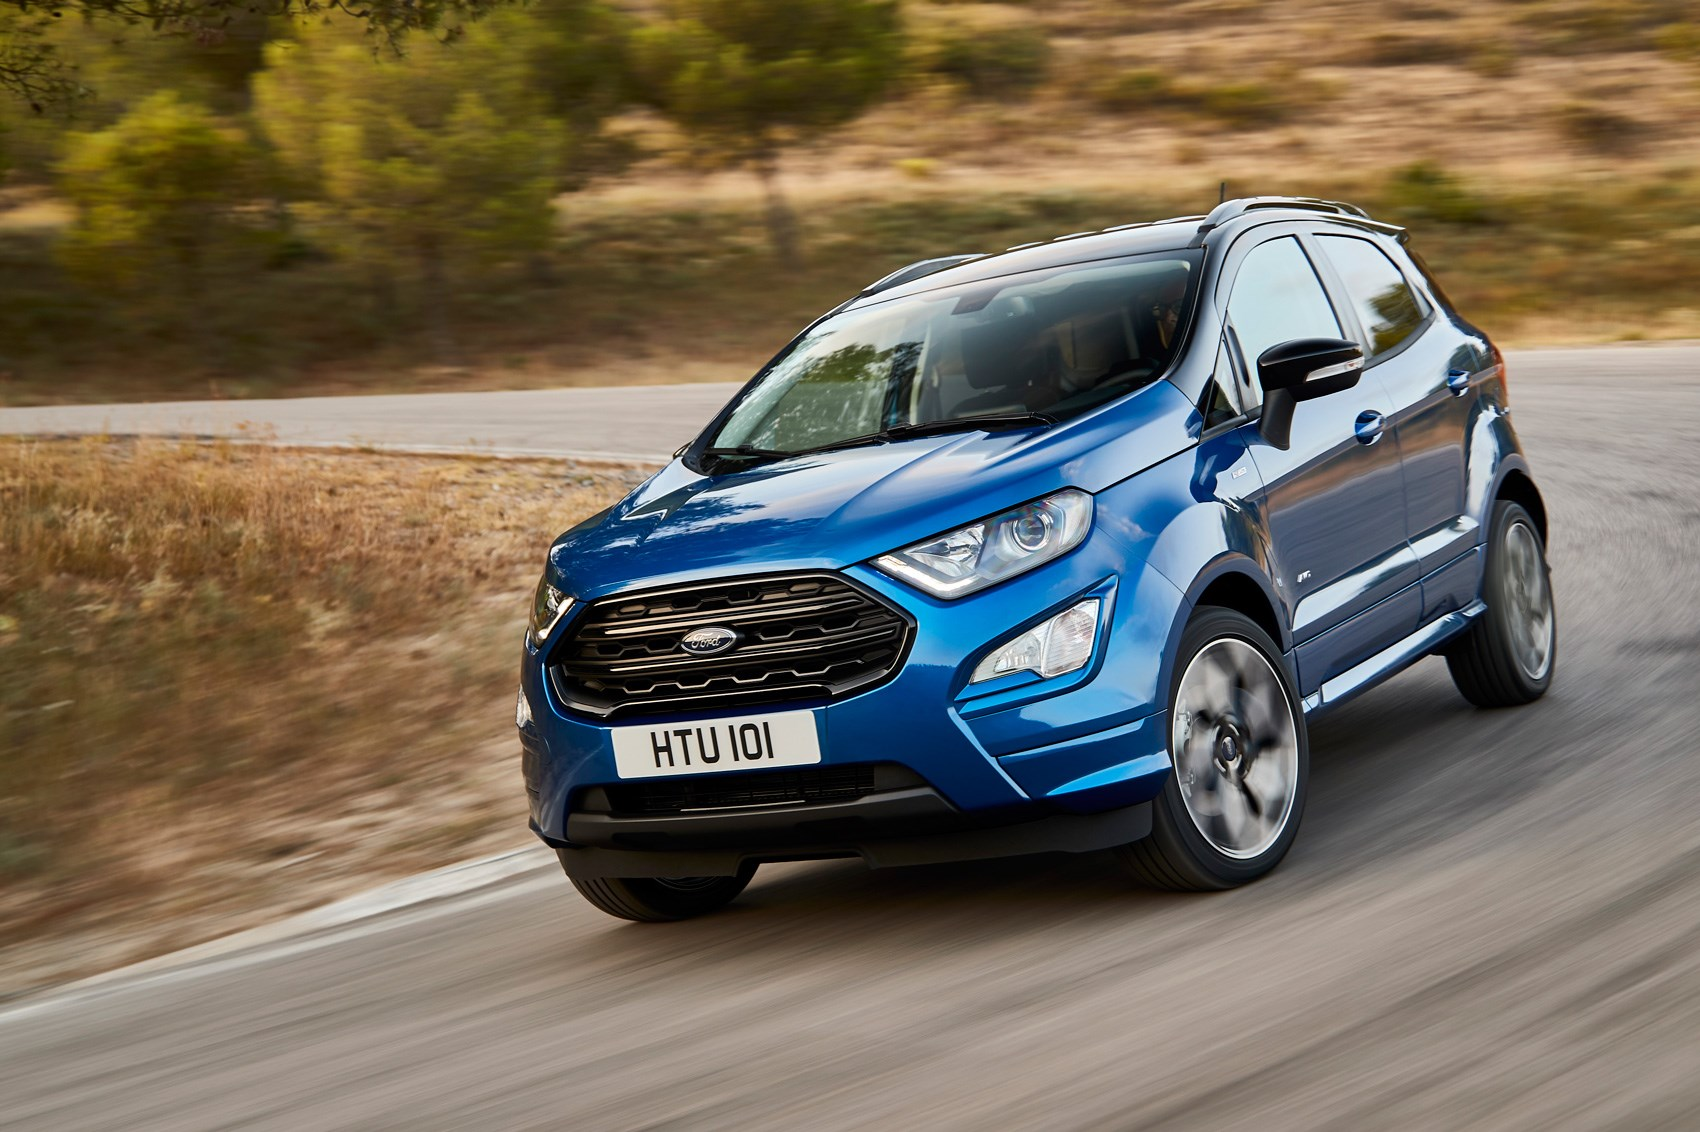 Frankfurt Motor Show 2017: Ford reveals much improved EcoSport